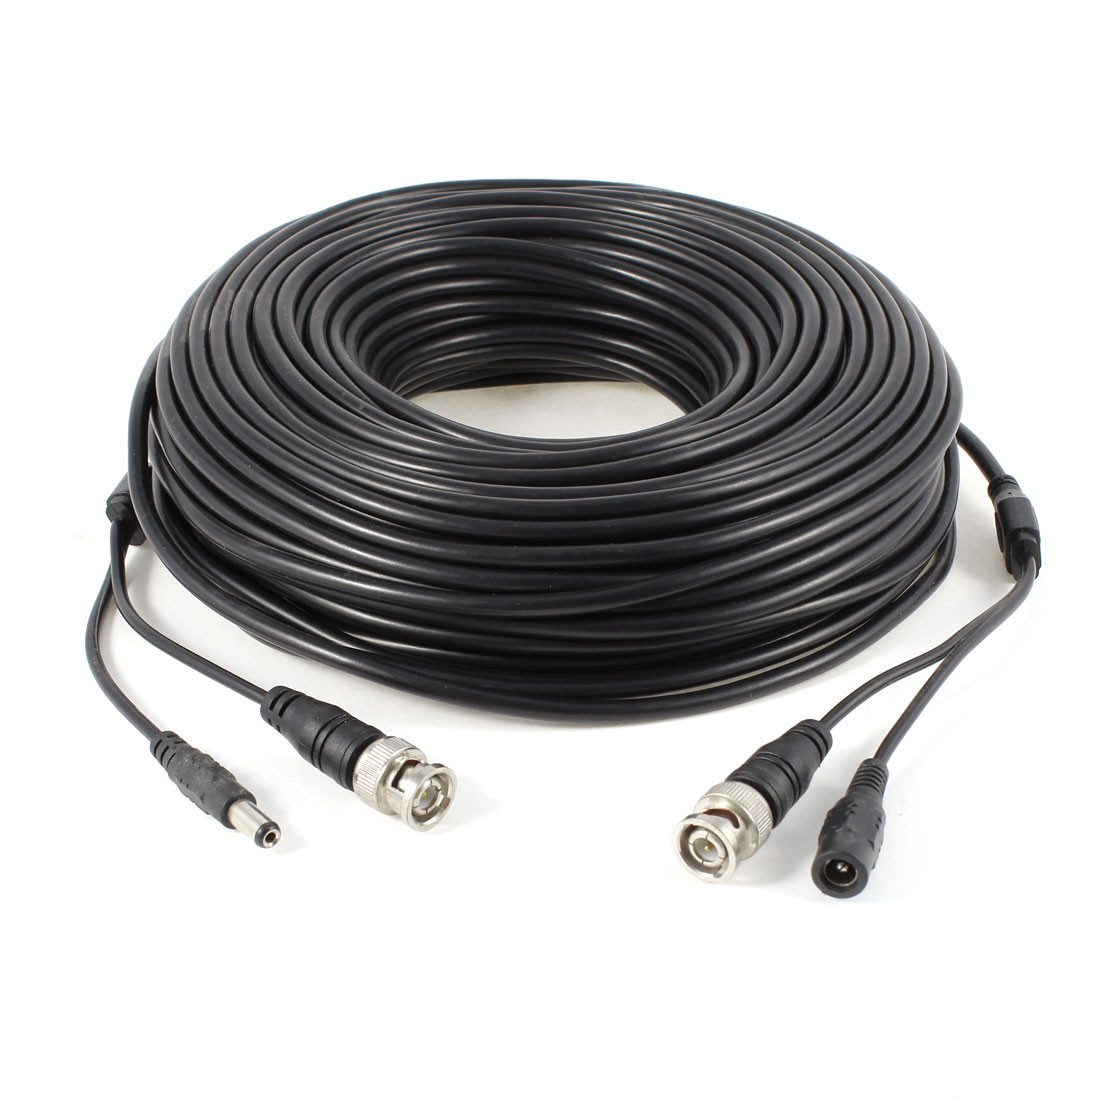 40M 132ft Black BNC CCTV Camera Surveillance Video Power Cable